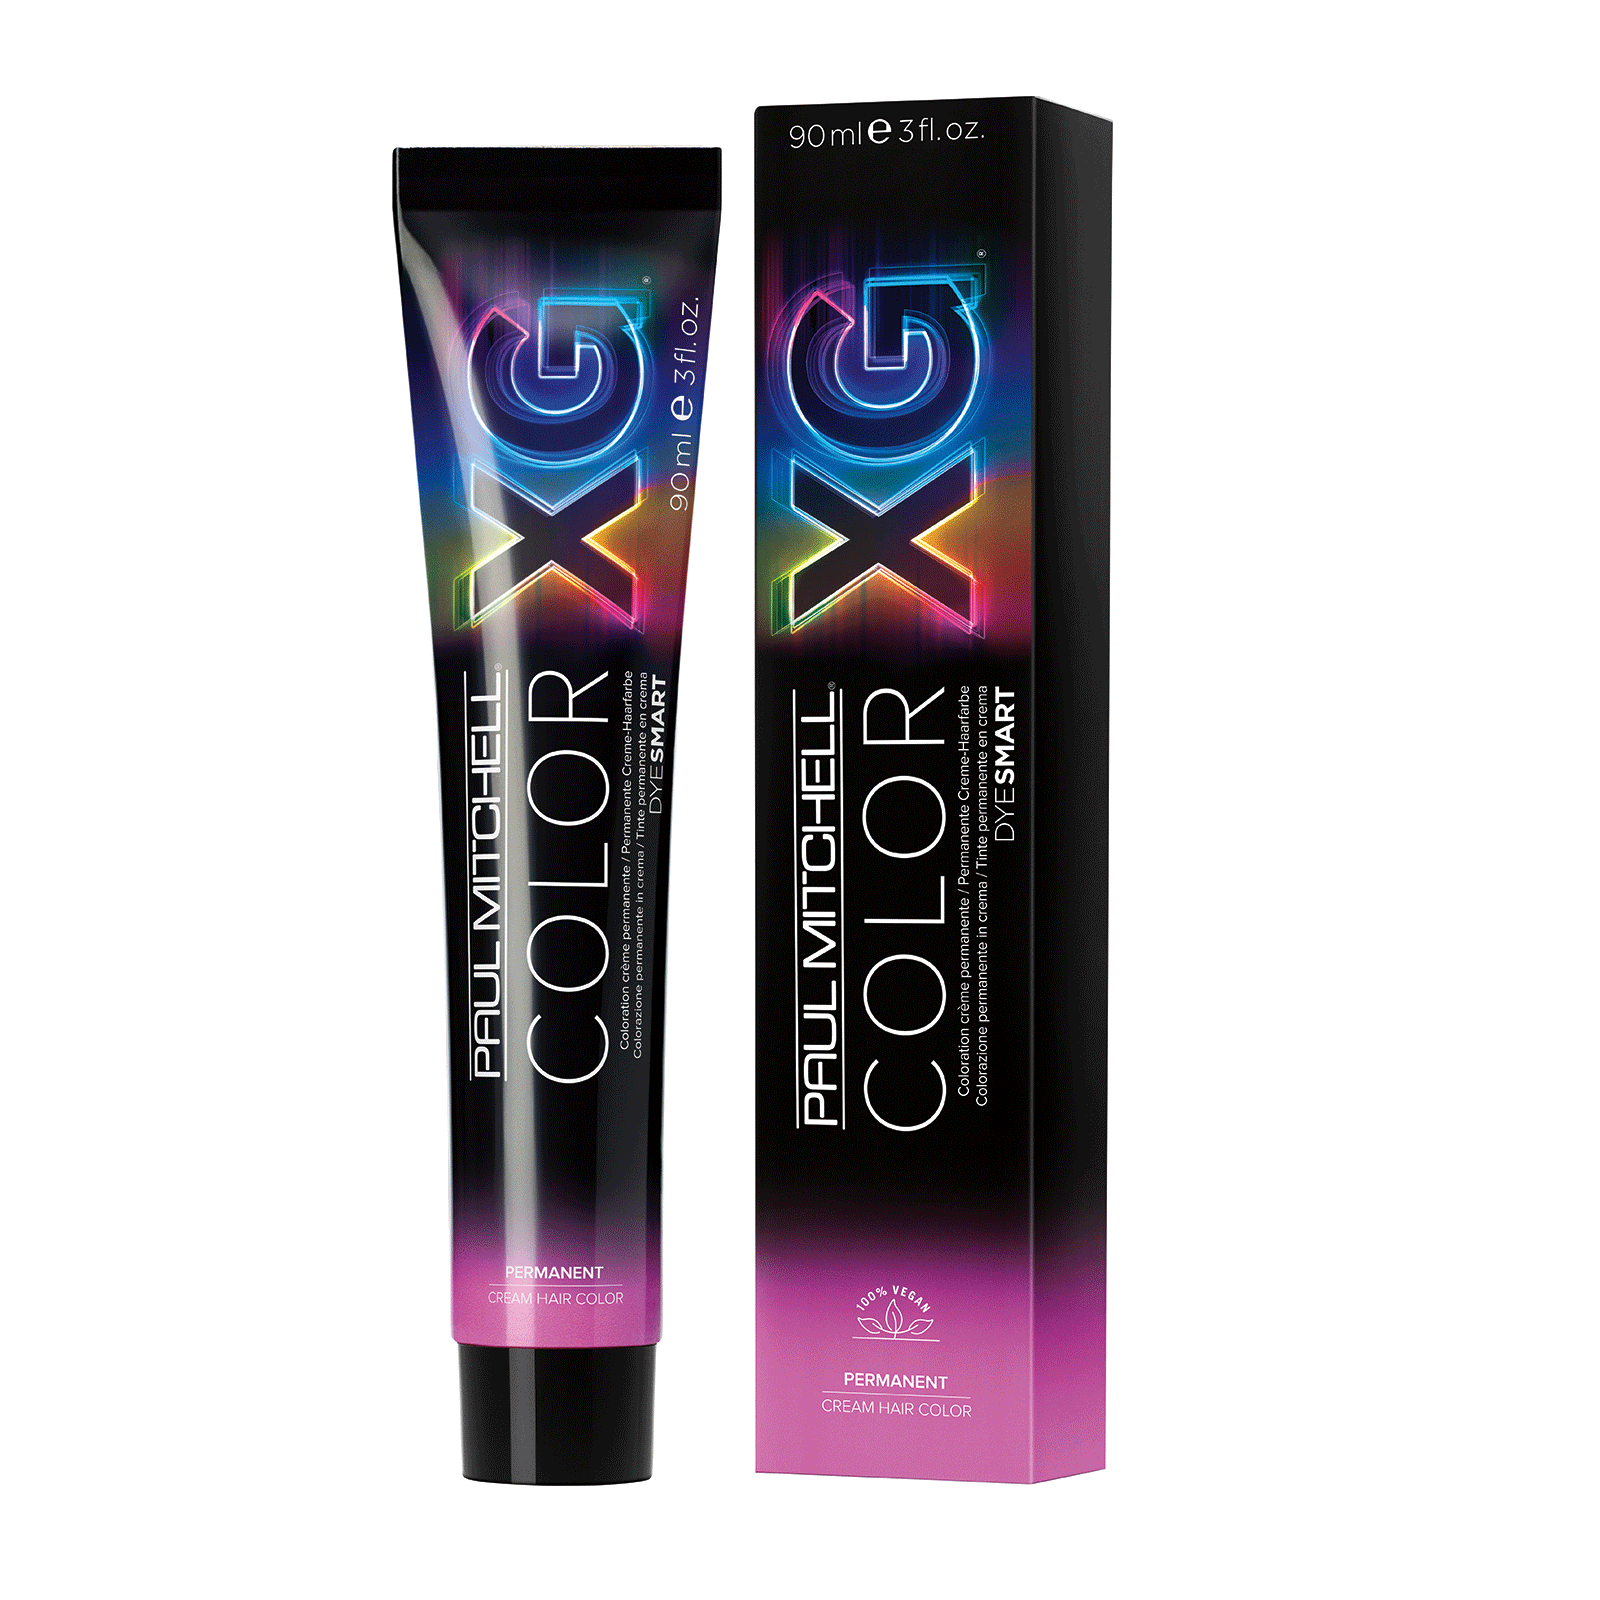 The Color Xg Permanent Hair Color John Paul Mitchell Systems